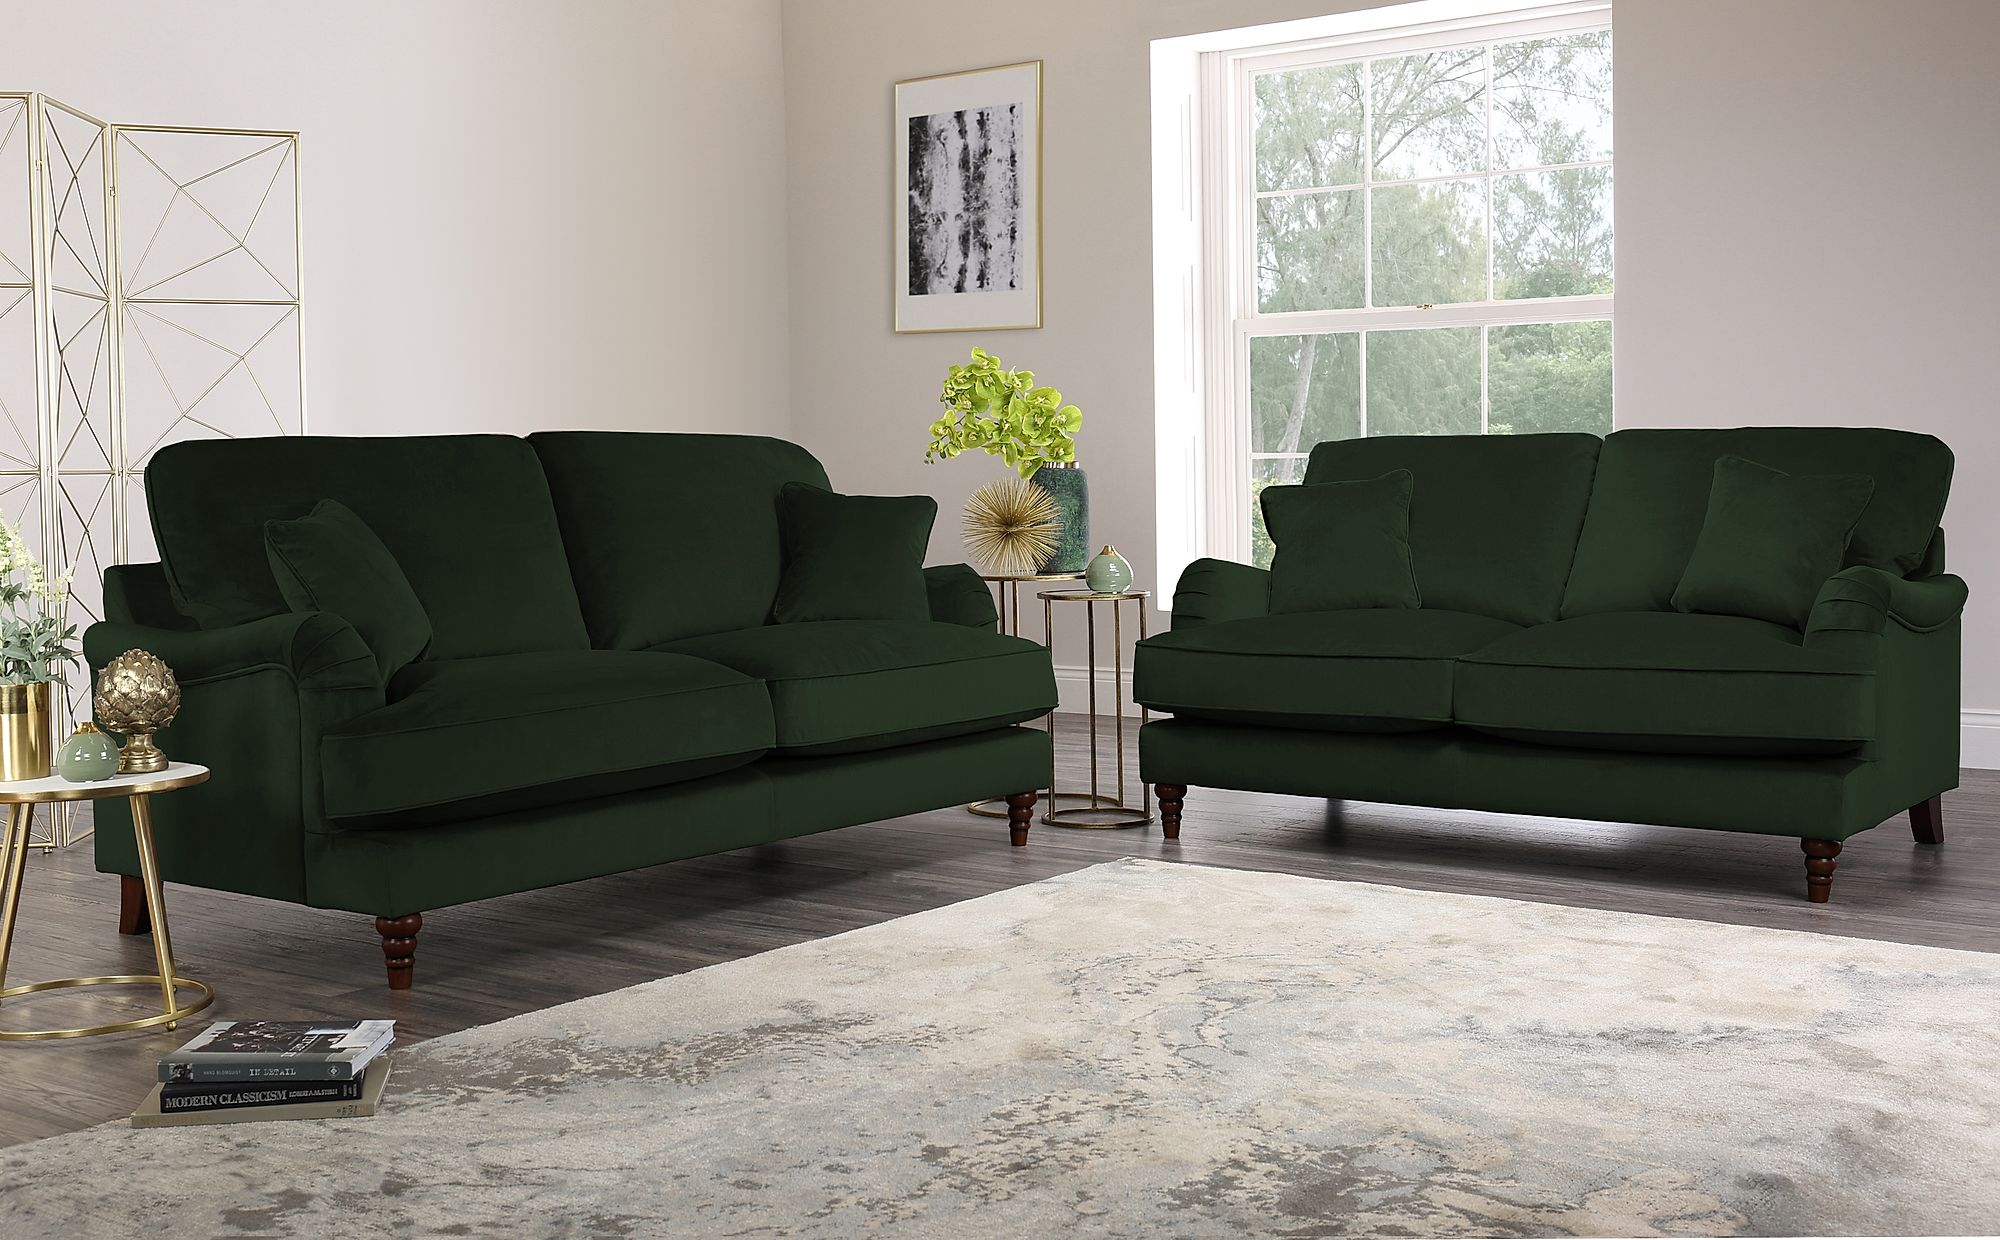 Charleston Emerald Green Velvet Sofa 3+2 Seater Only £1299.98